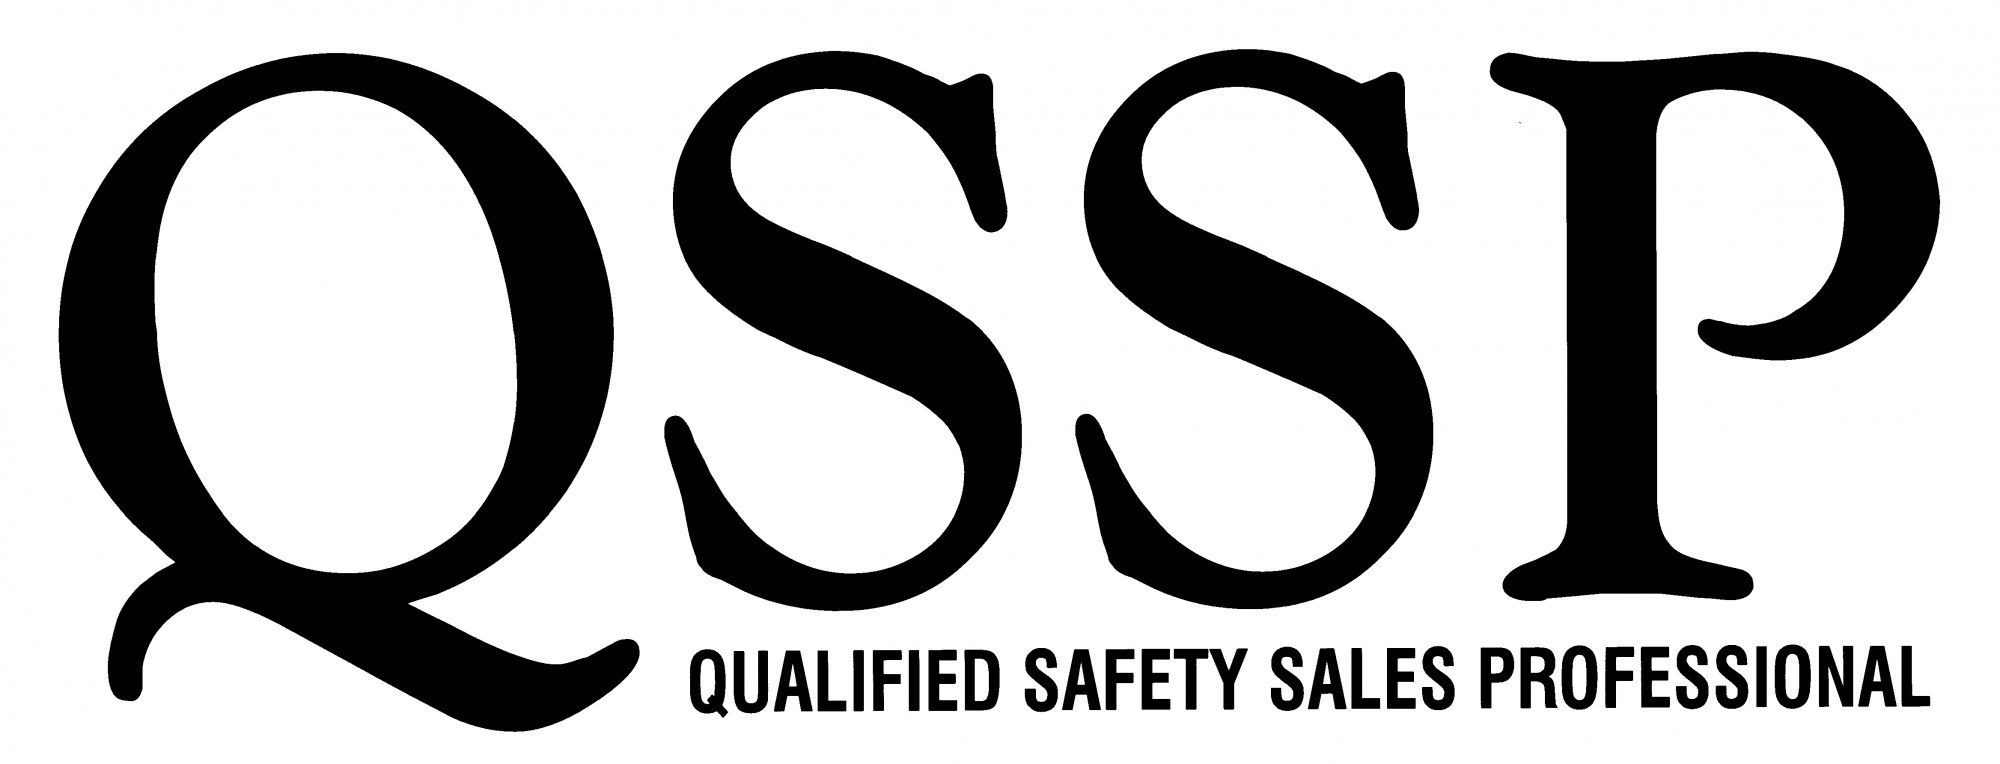 40 Safety Professionals from Airgas Earn QSSP Designation